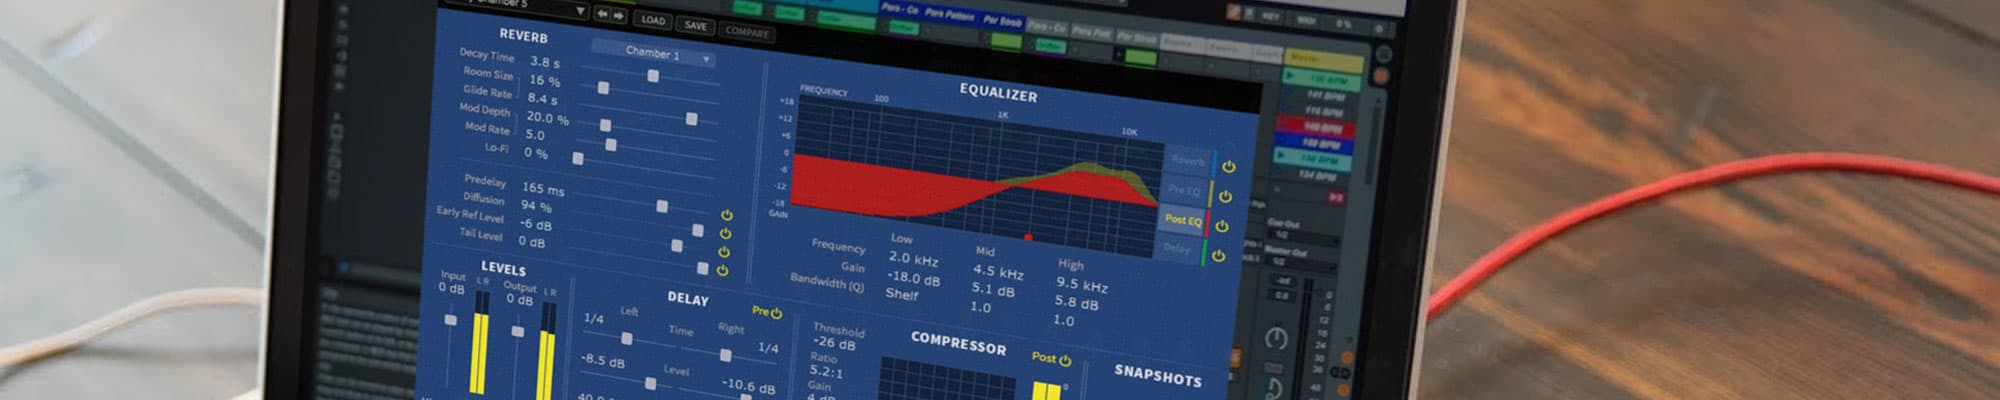 5 Plugins to Professionalize Your DAW | Reverb News